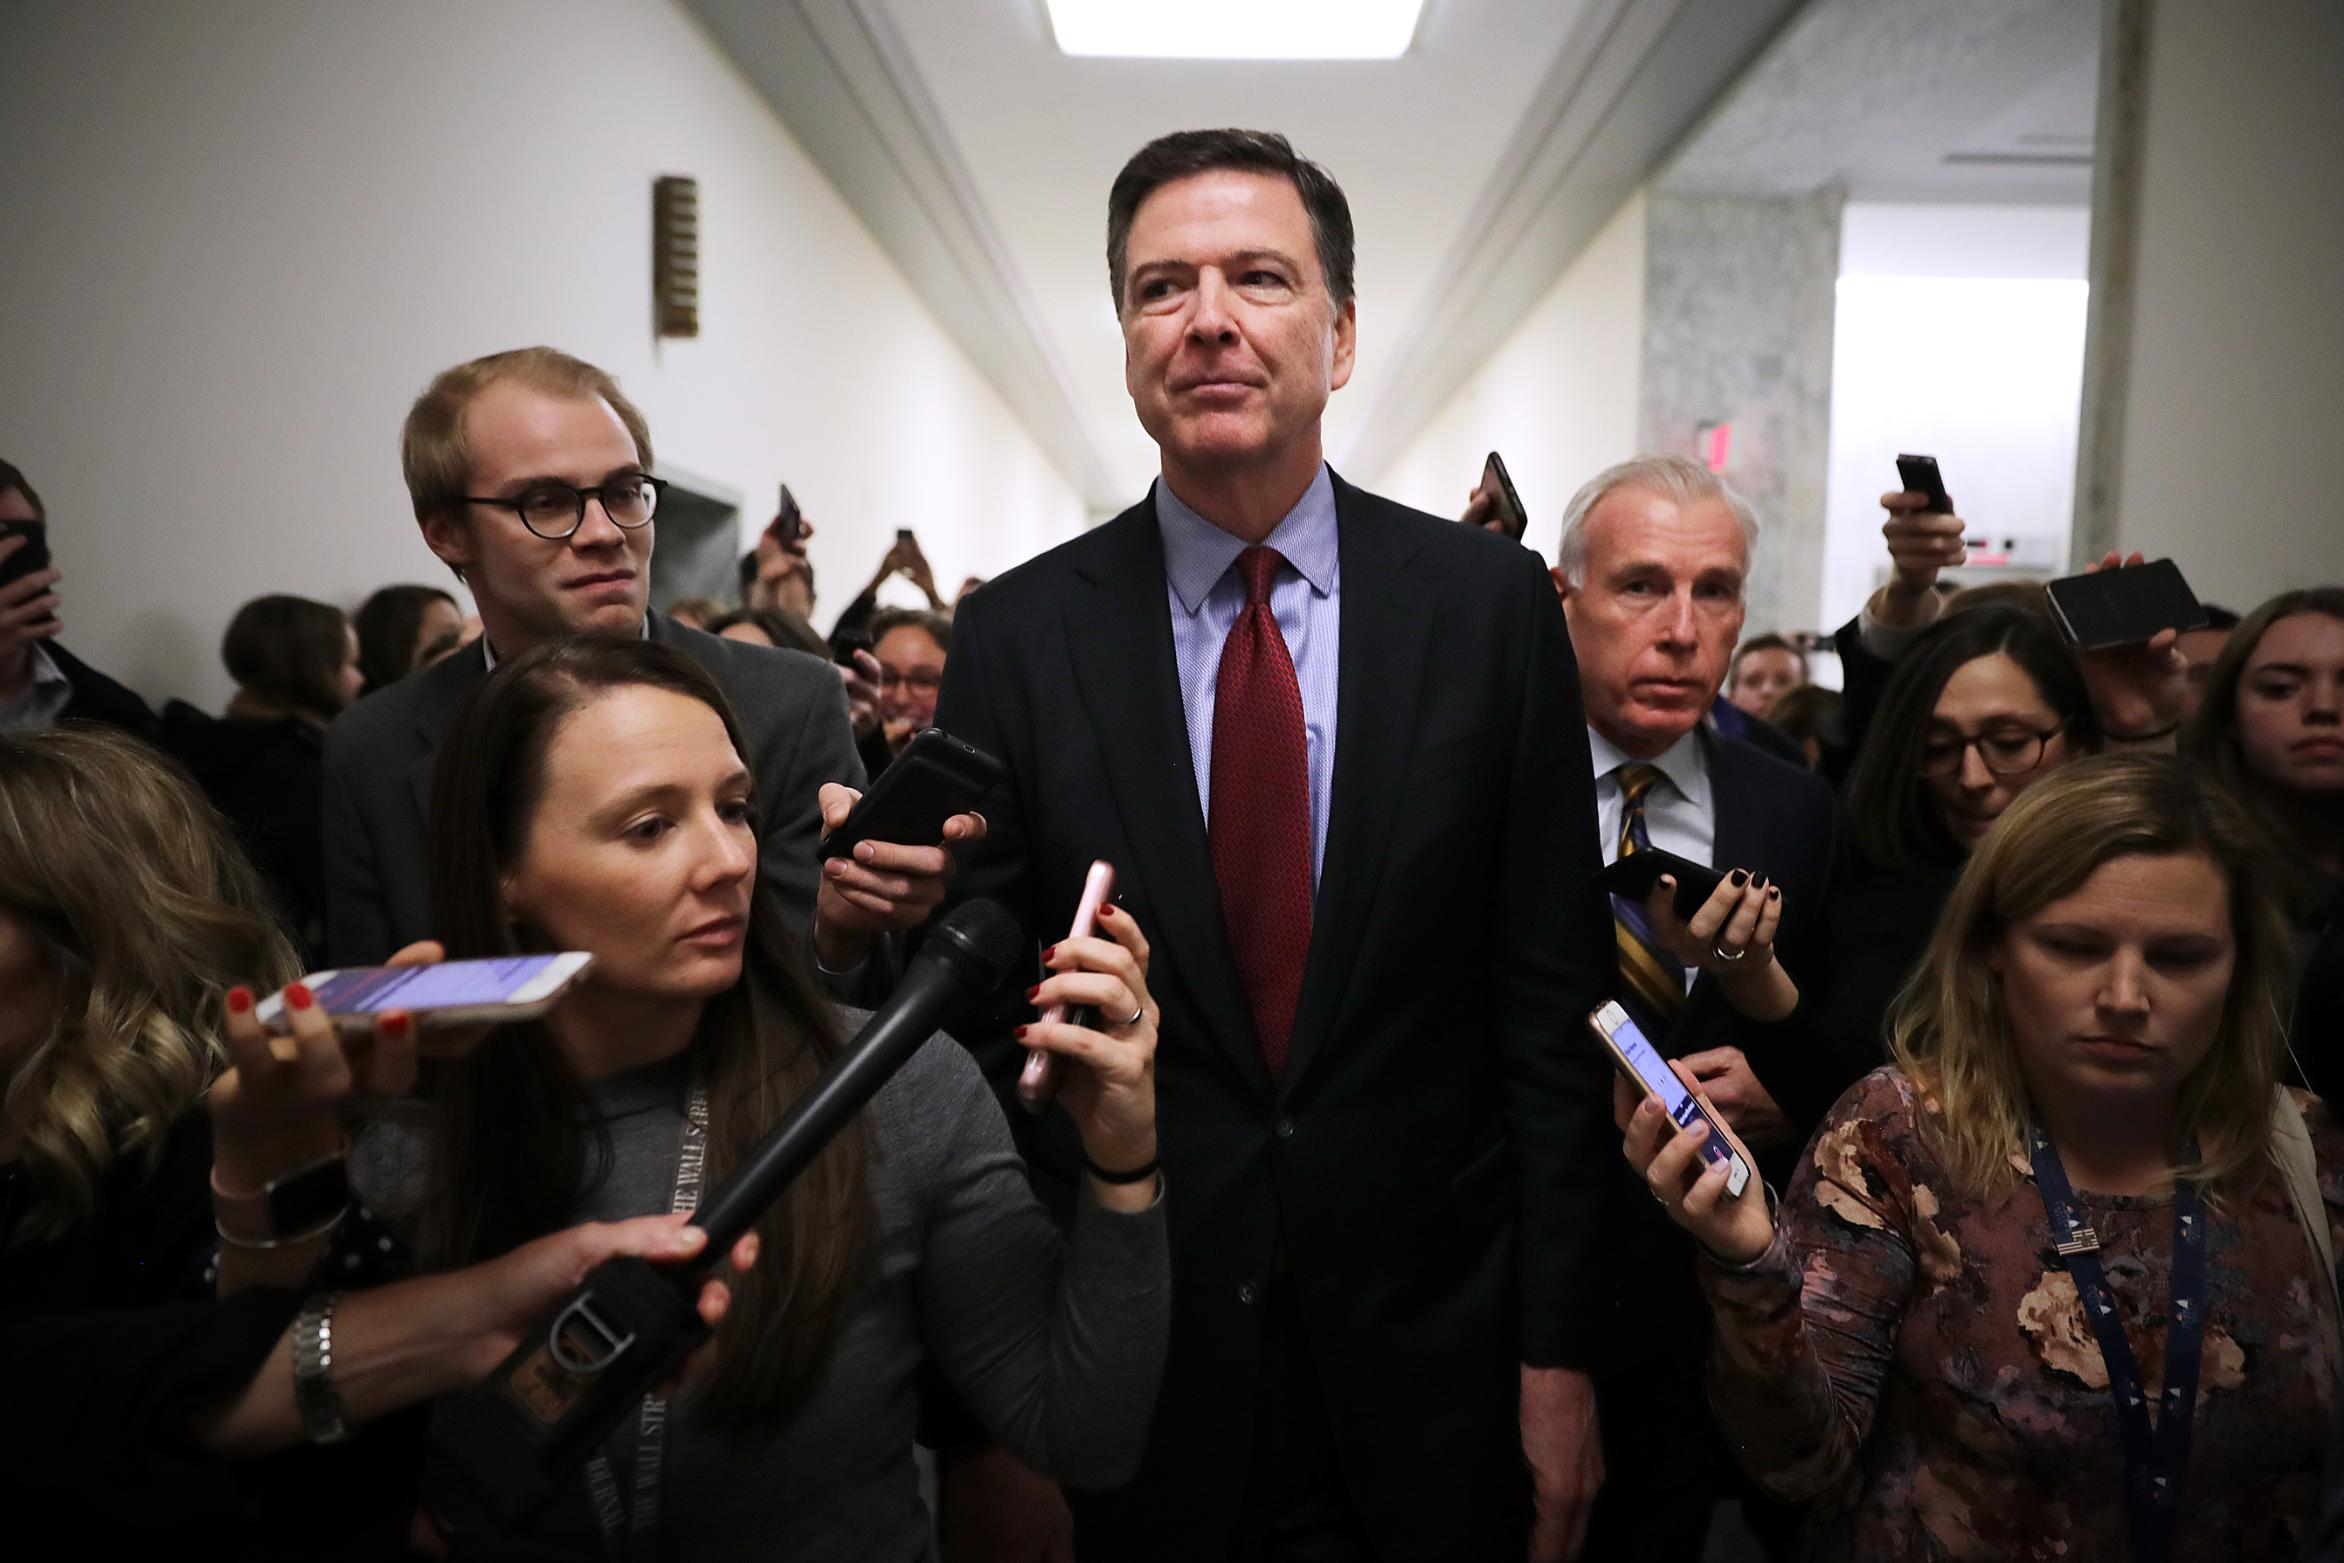 Comey knocks Barr's attacks on the Russia probe: 'I have no idea what on Earth he is talking about'